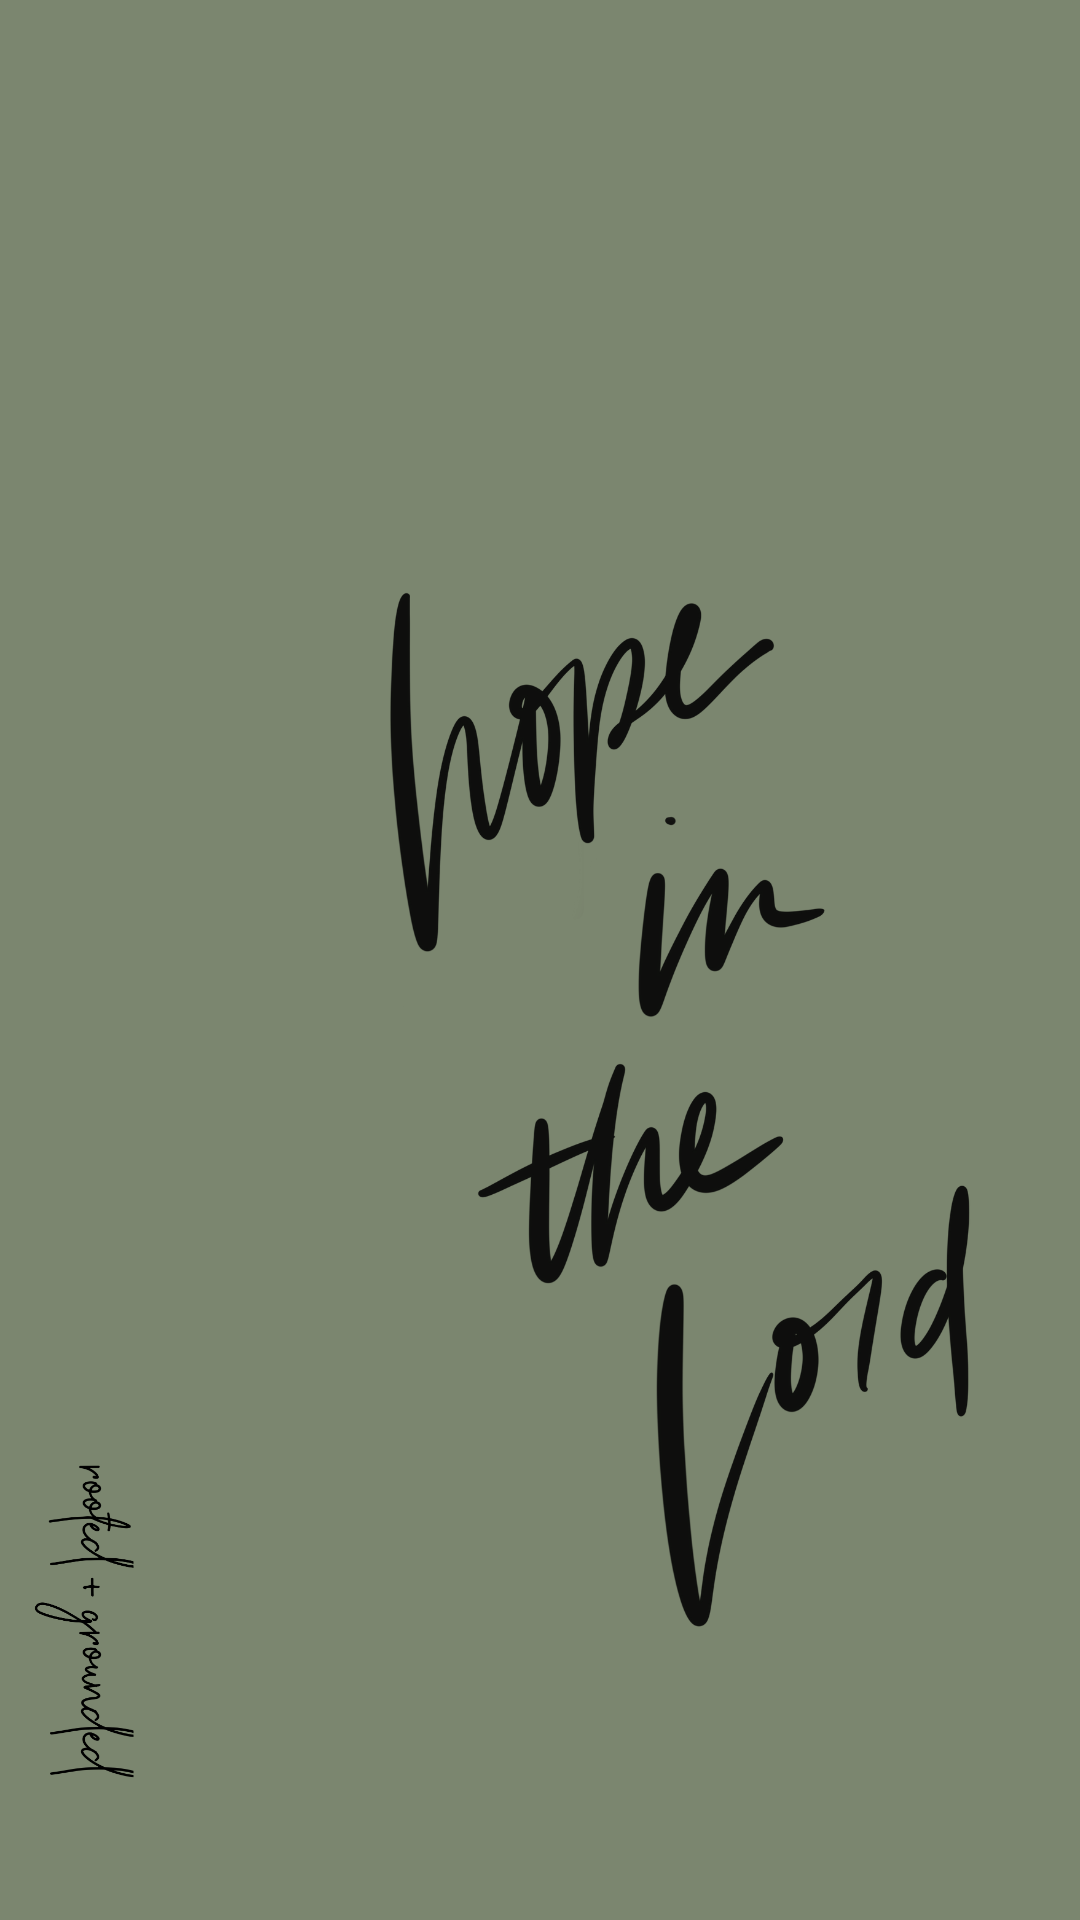 Christian Iphone Wallpapers Free Downloads Rooted Grounded